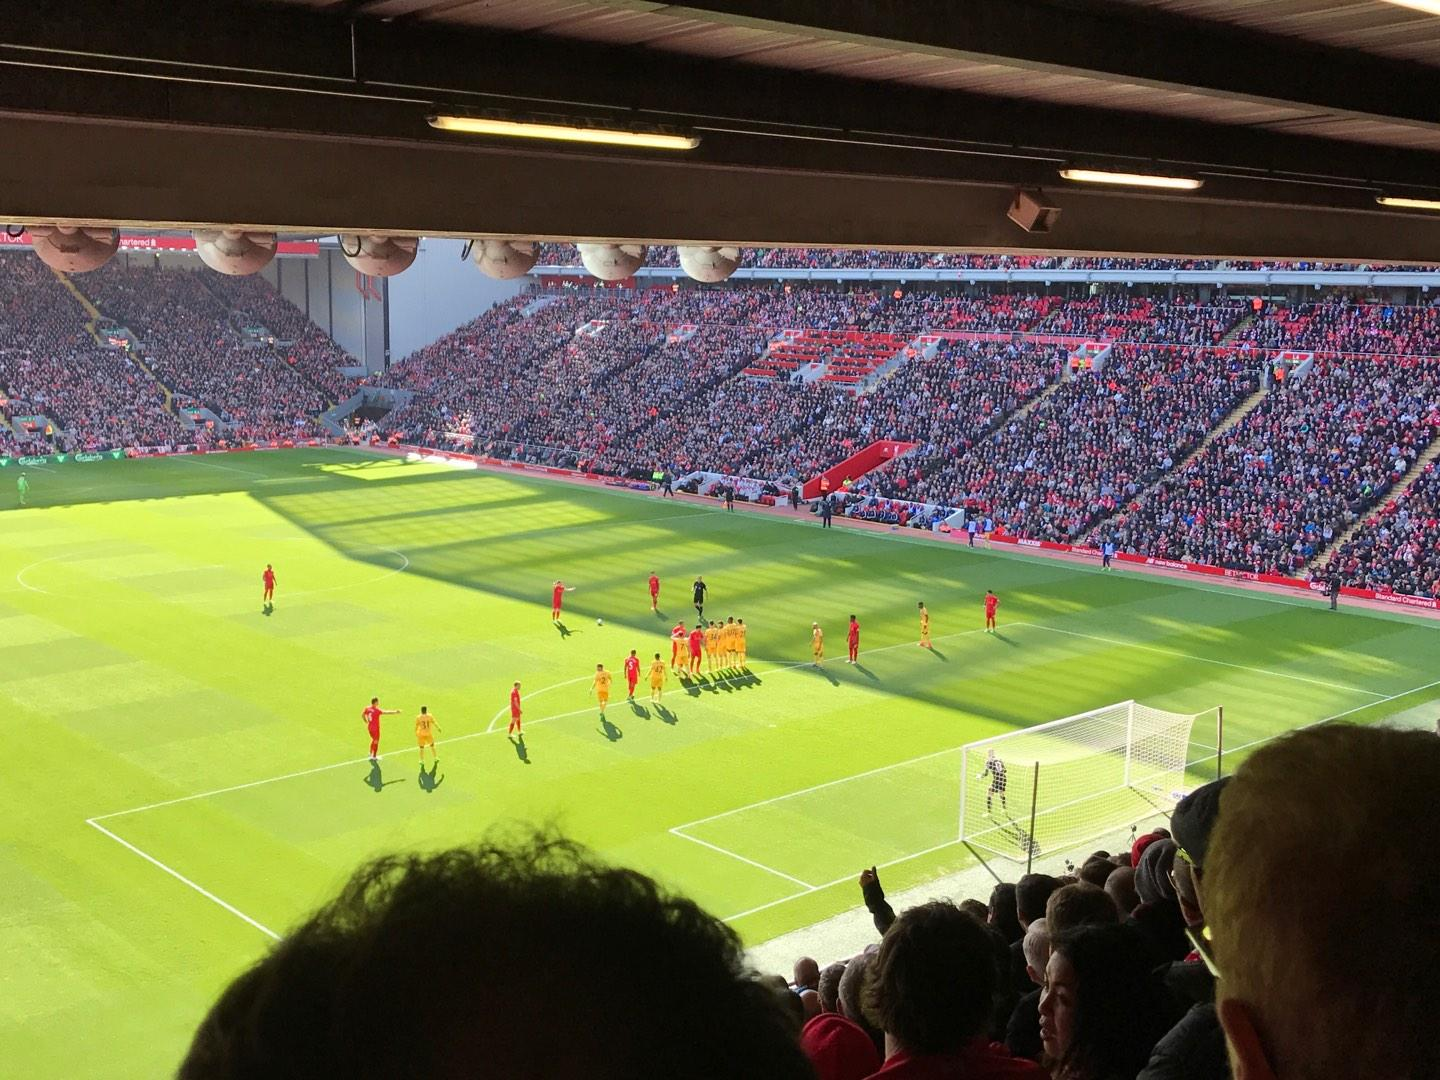 Anfield Section 227 Row 12 Seat 184